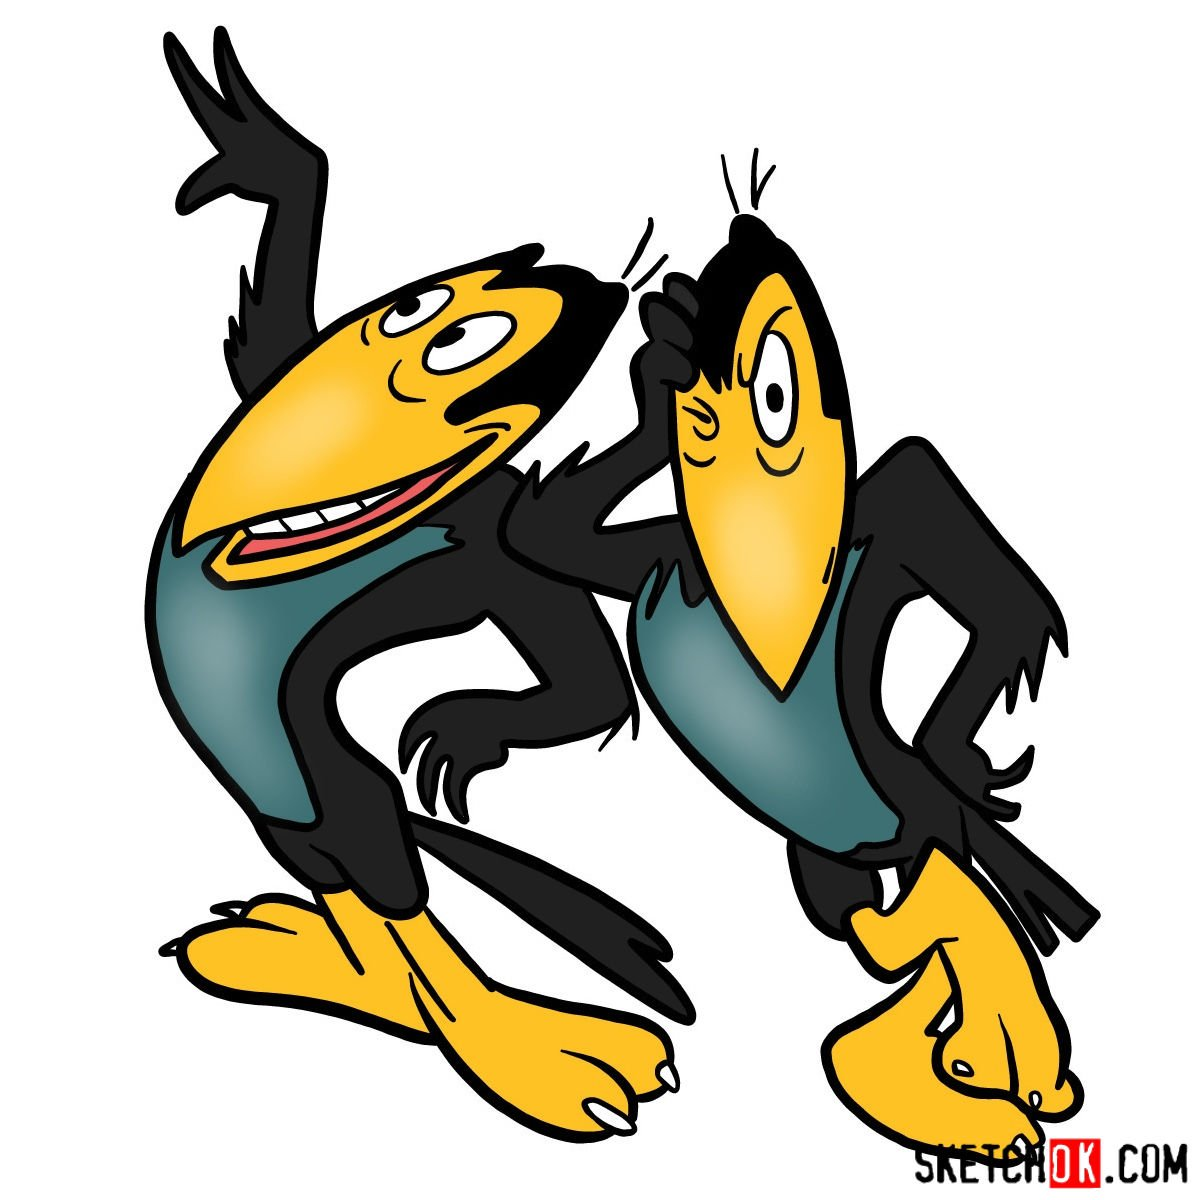 How to draw Heckle and Jeckle - coloring